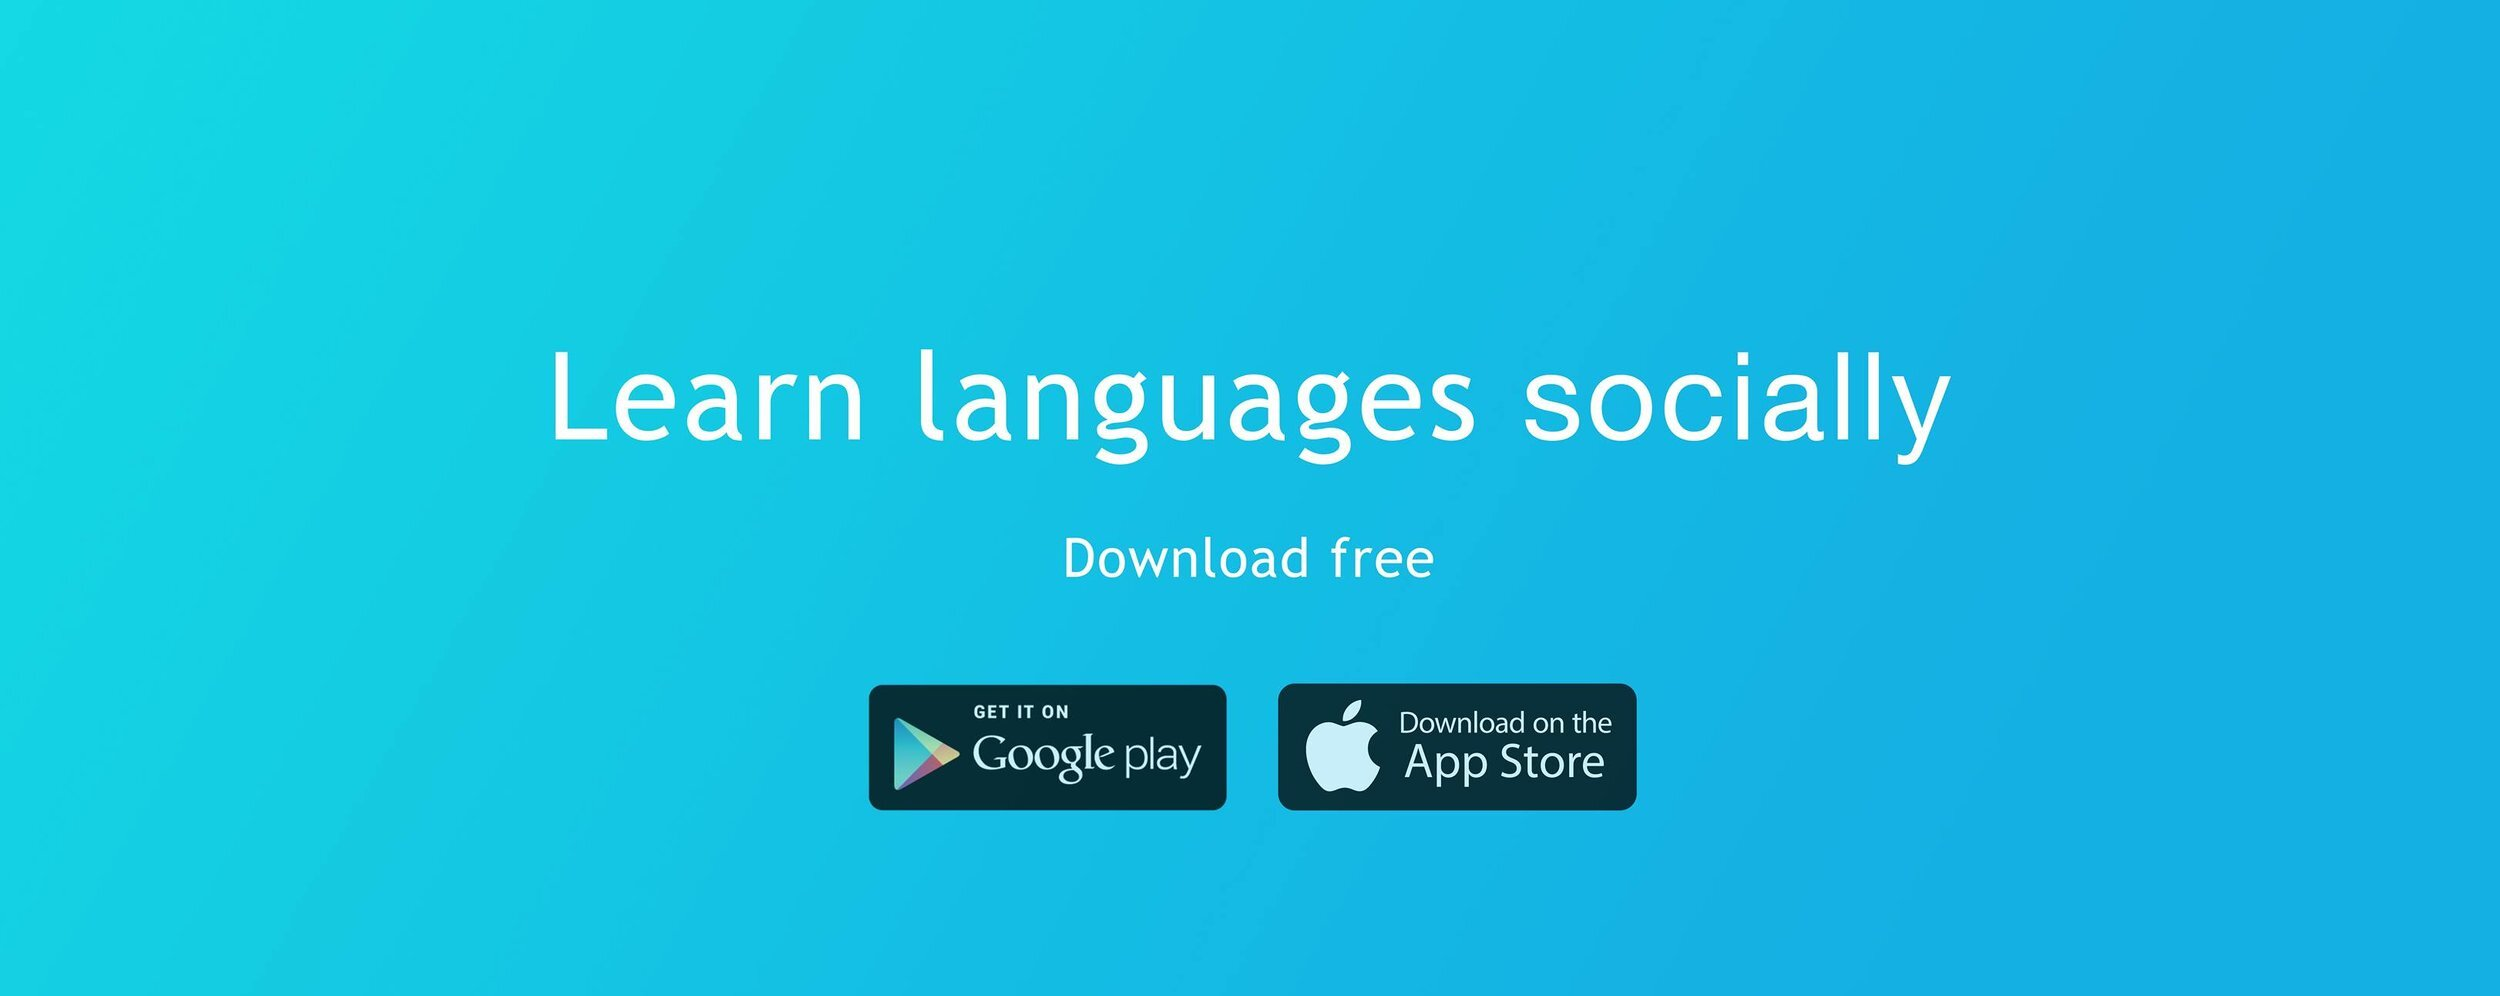 idyoma+local+language+exchange+chat+learn+languages+socially+most+useful+languages.jpg